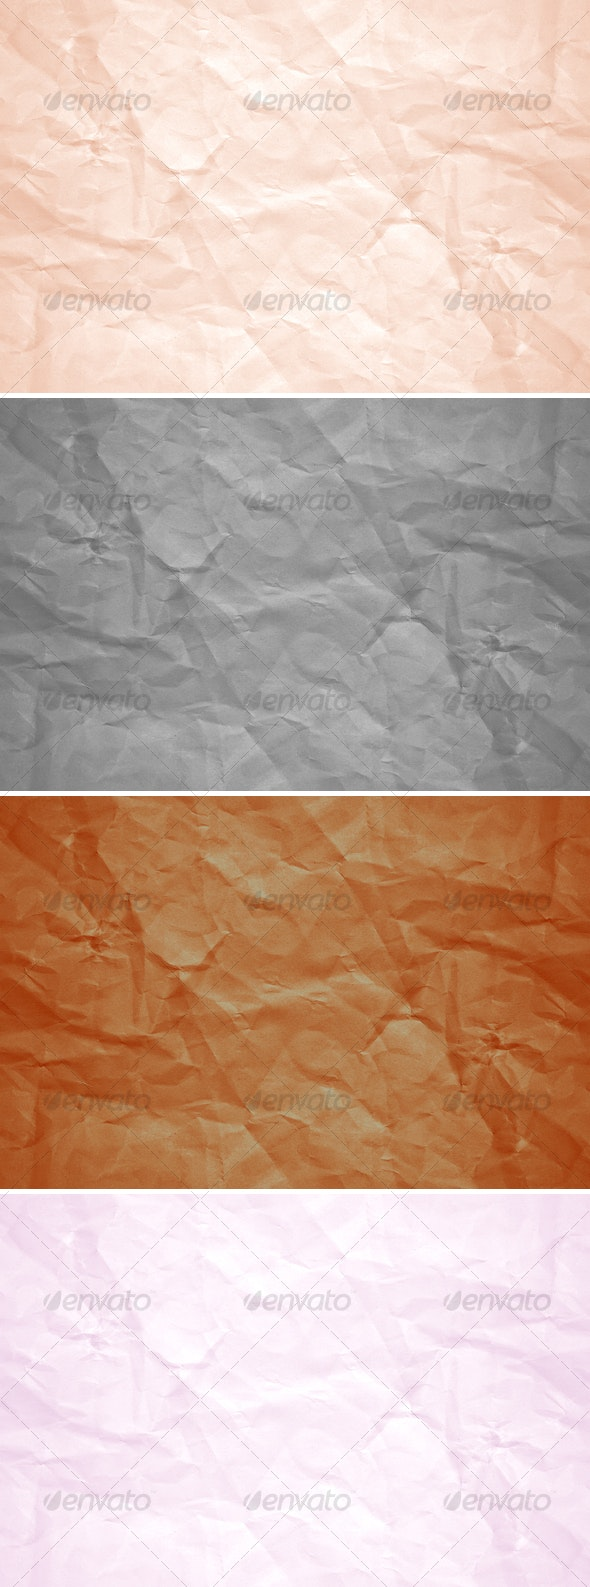 Wrinkled Paper Texture - Paper Textures